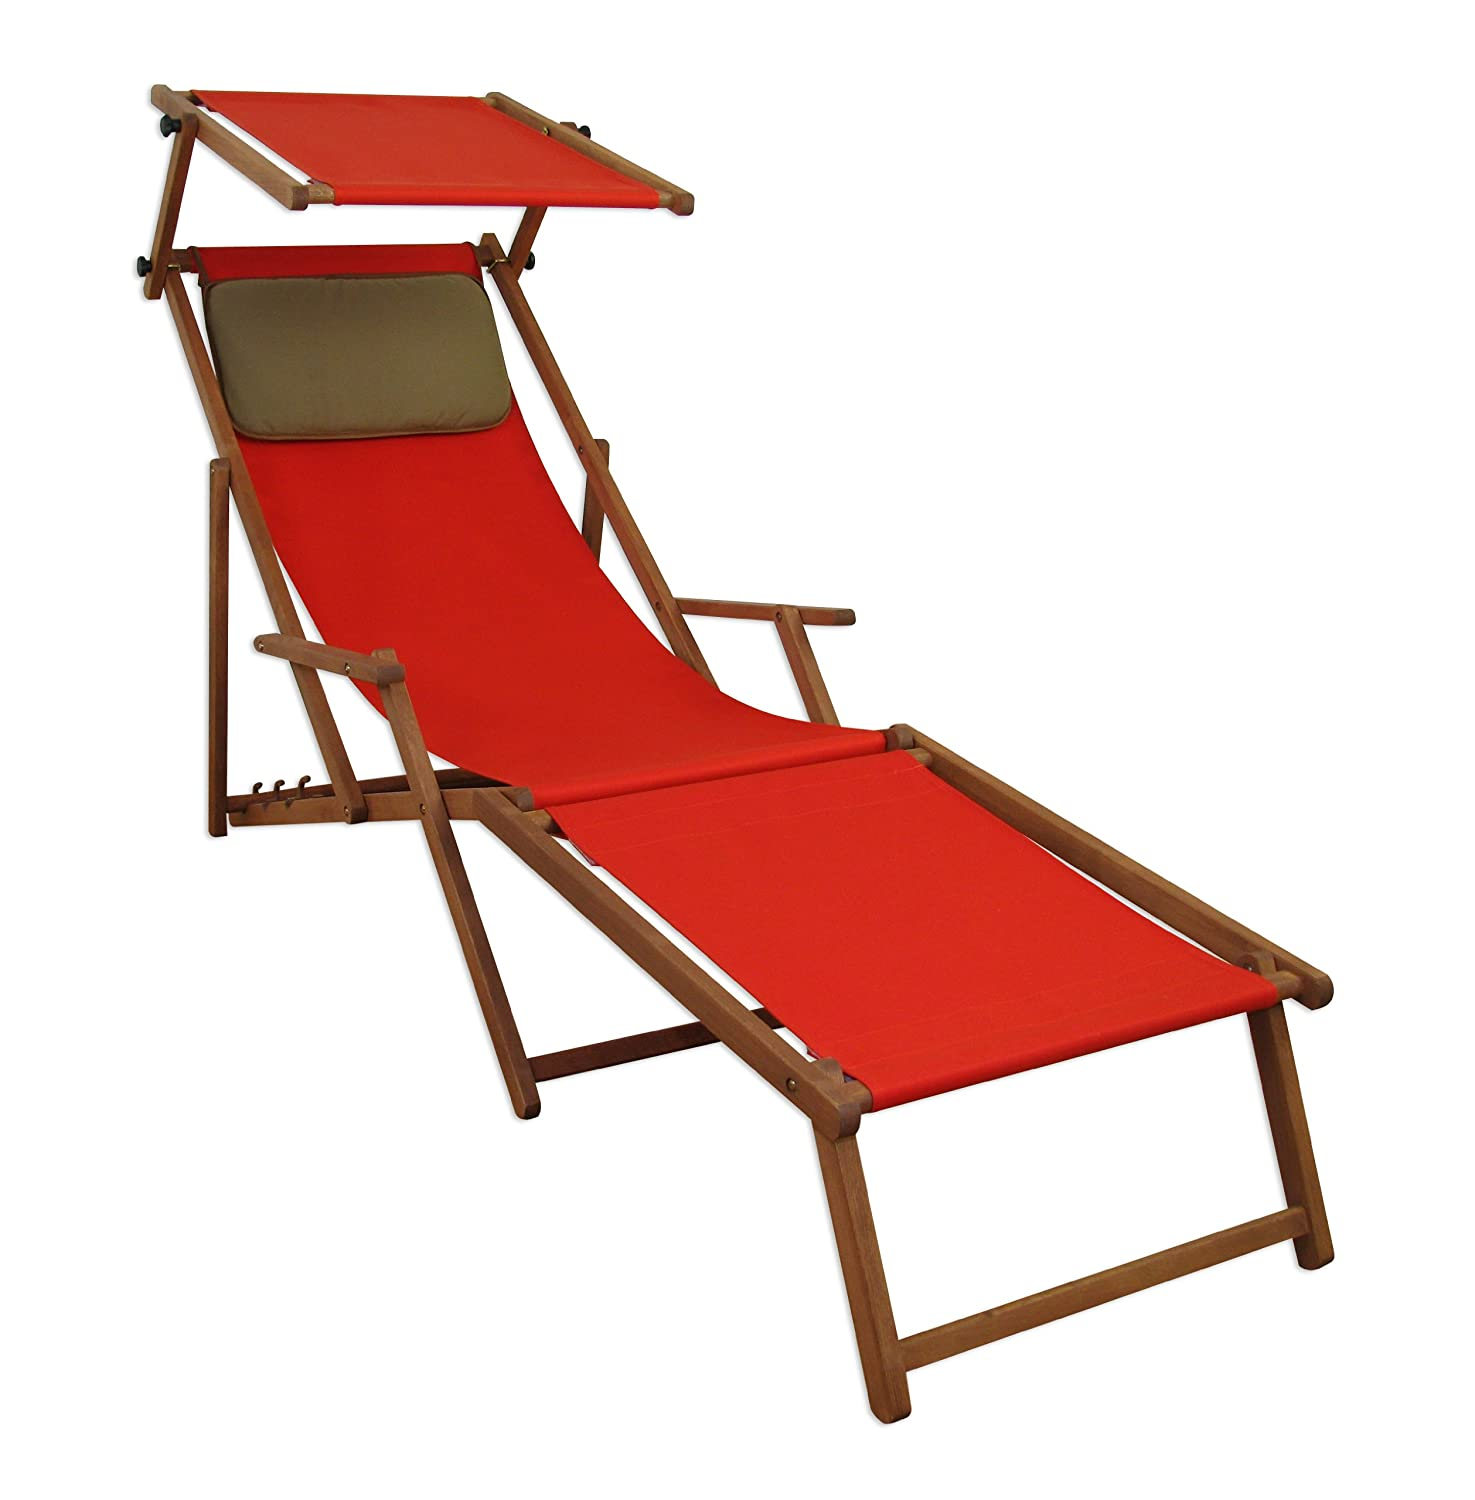 sonnenliege gartenliege deckchair saunaliege mit dach fu teil braun jetzt kaufen. Black Bedroom Furniture Sets. Home Design Ideas